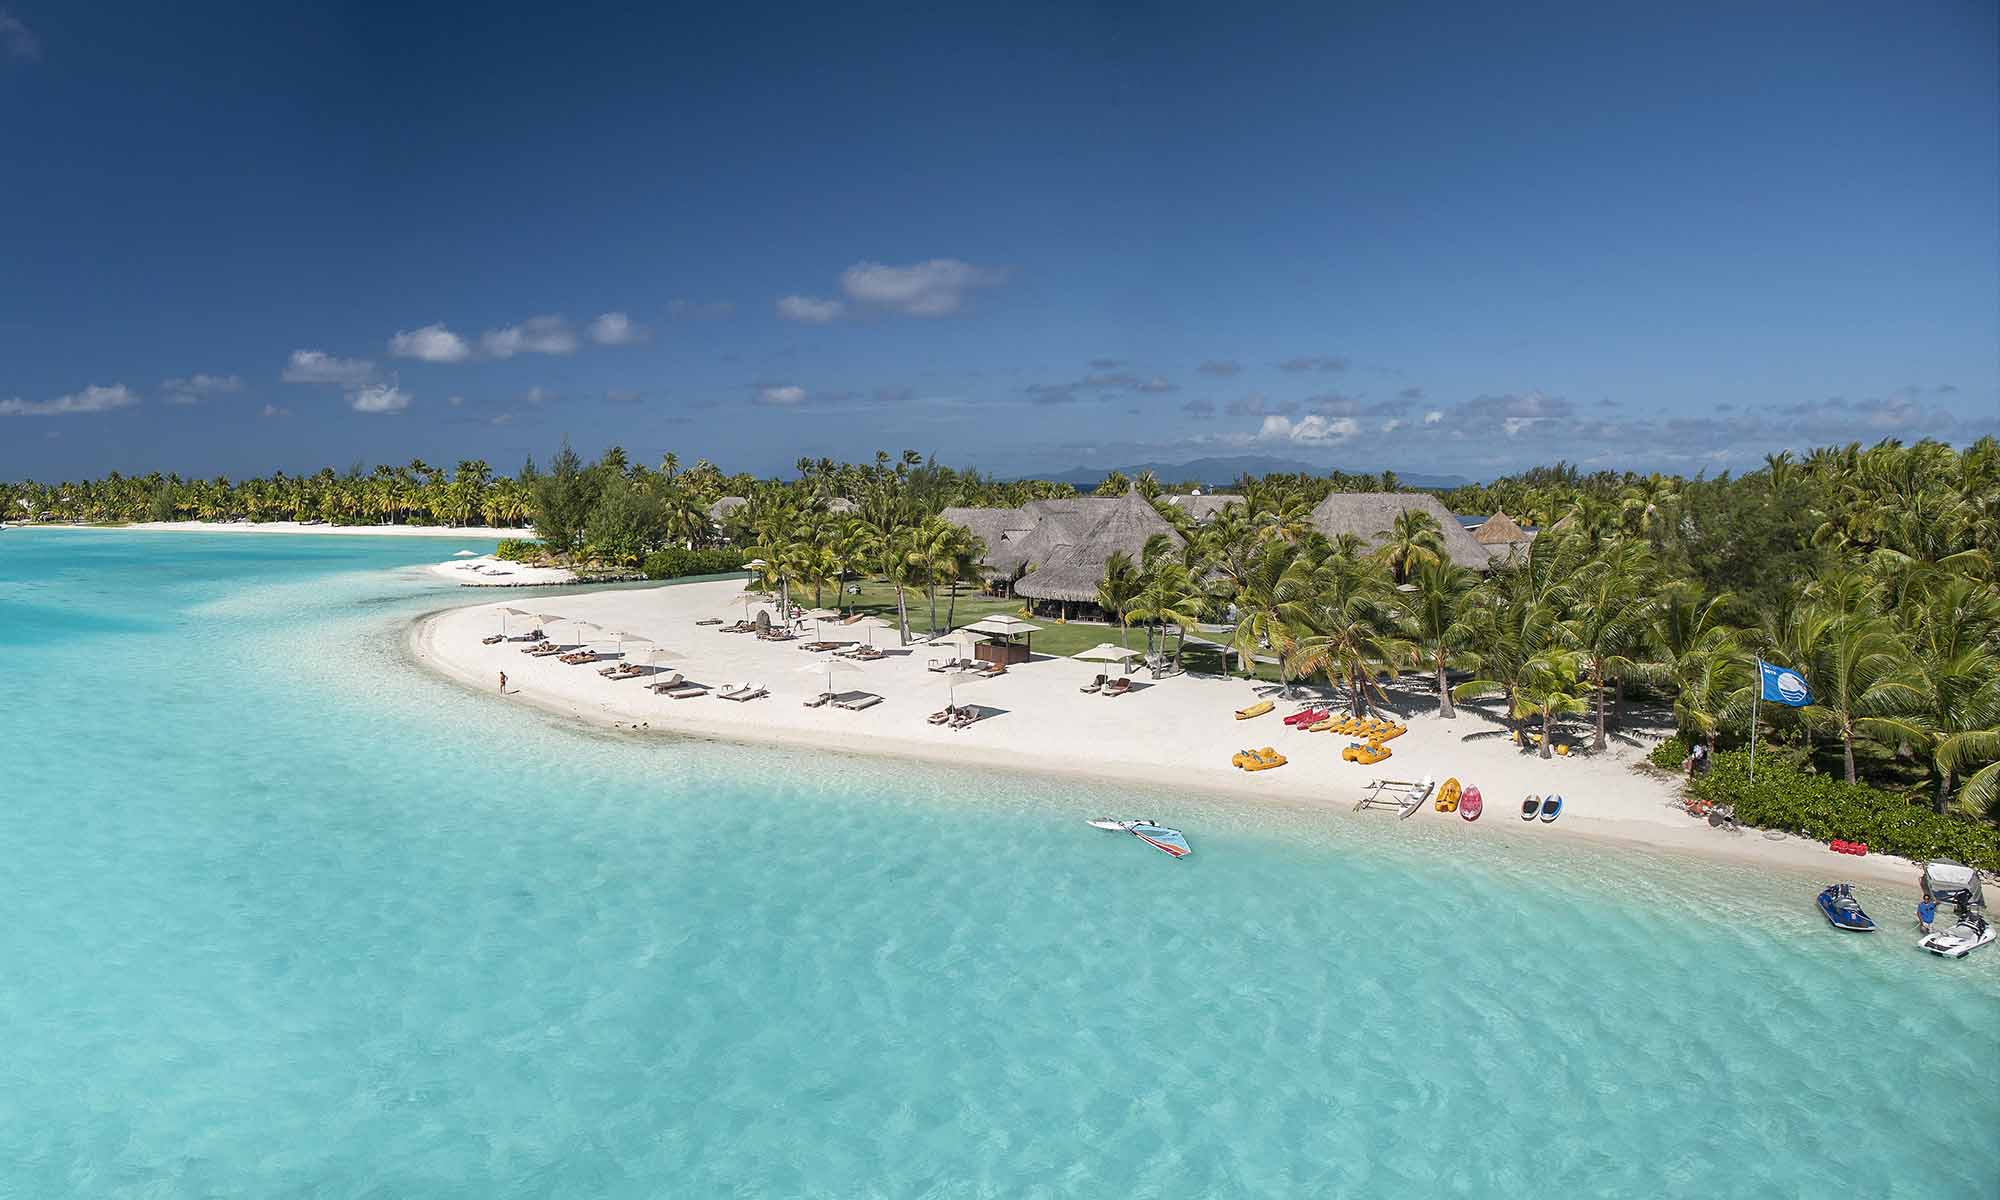 St Regis Bora Bora's Private Beach